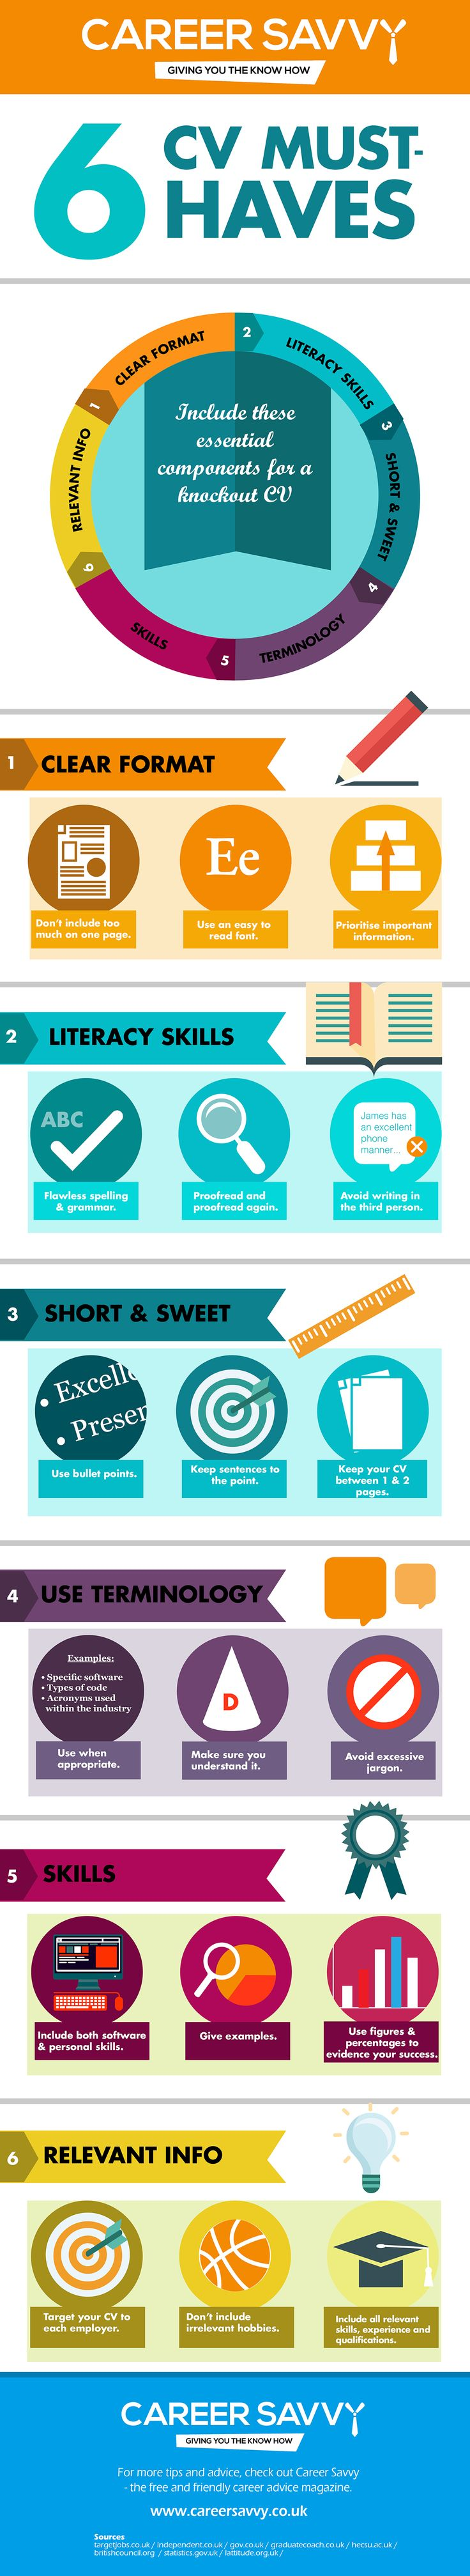 Career Savvy   CV Advice Infographic